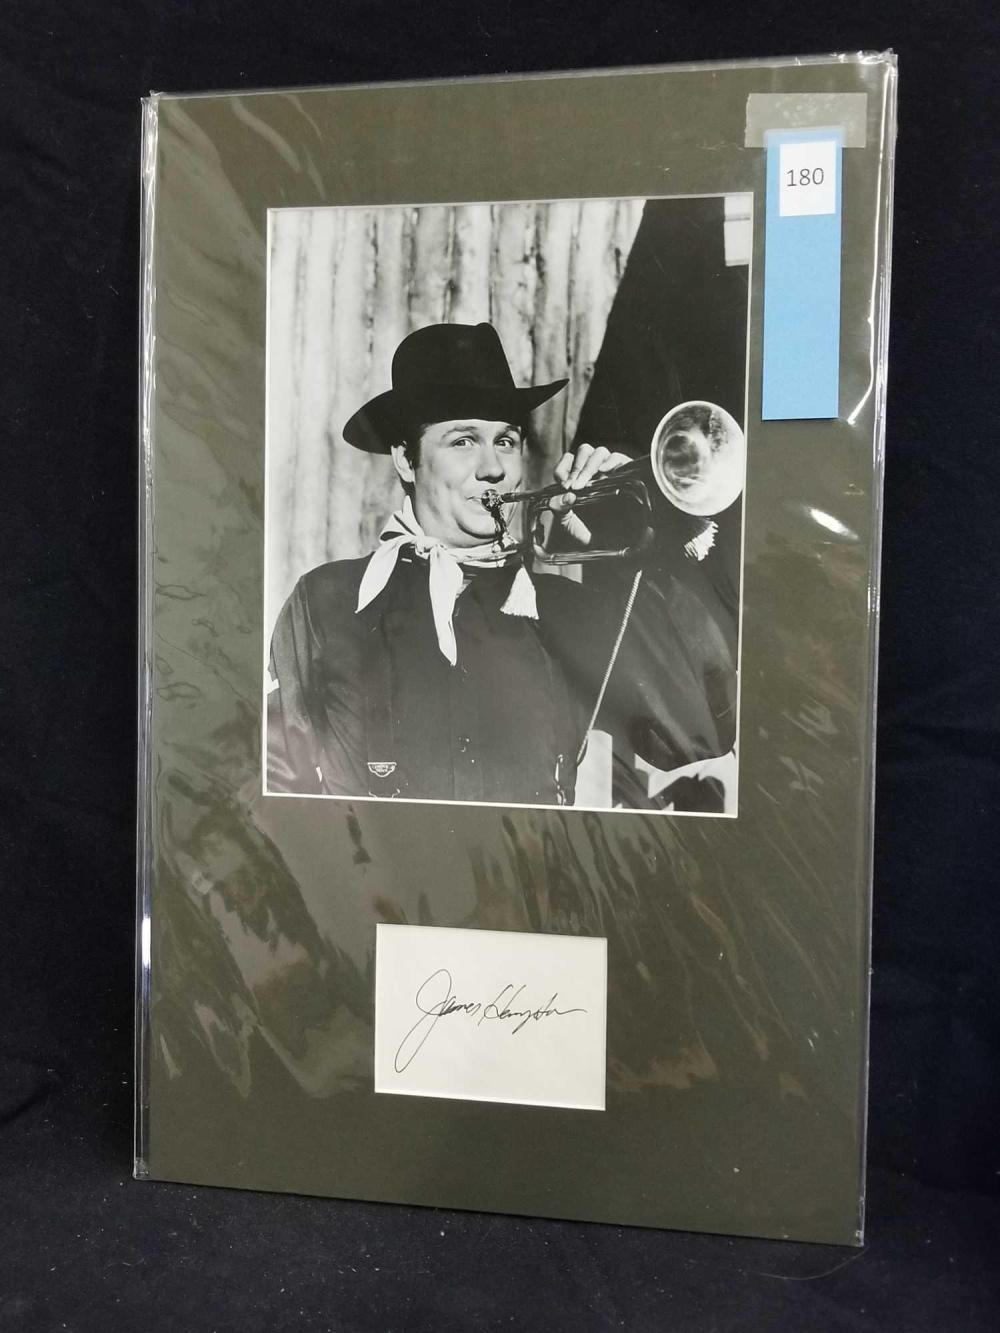 JAMES HAMPTON BLACK & WHITE PUBLICITY PHOTO W/ SIGNATURE CARD